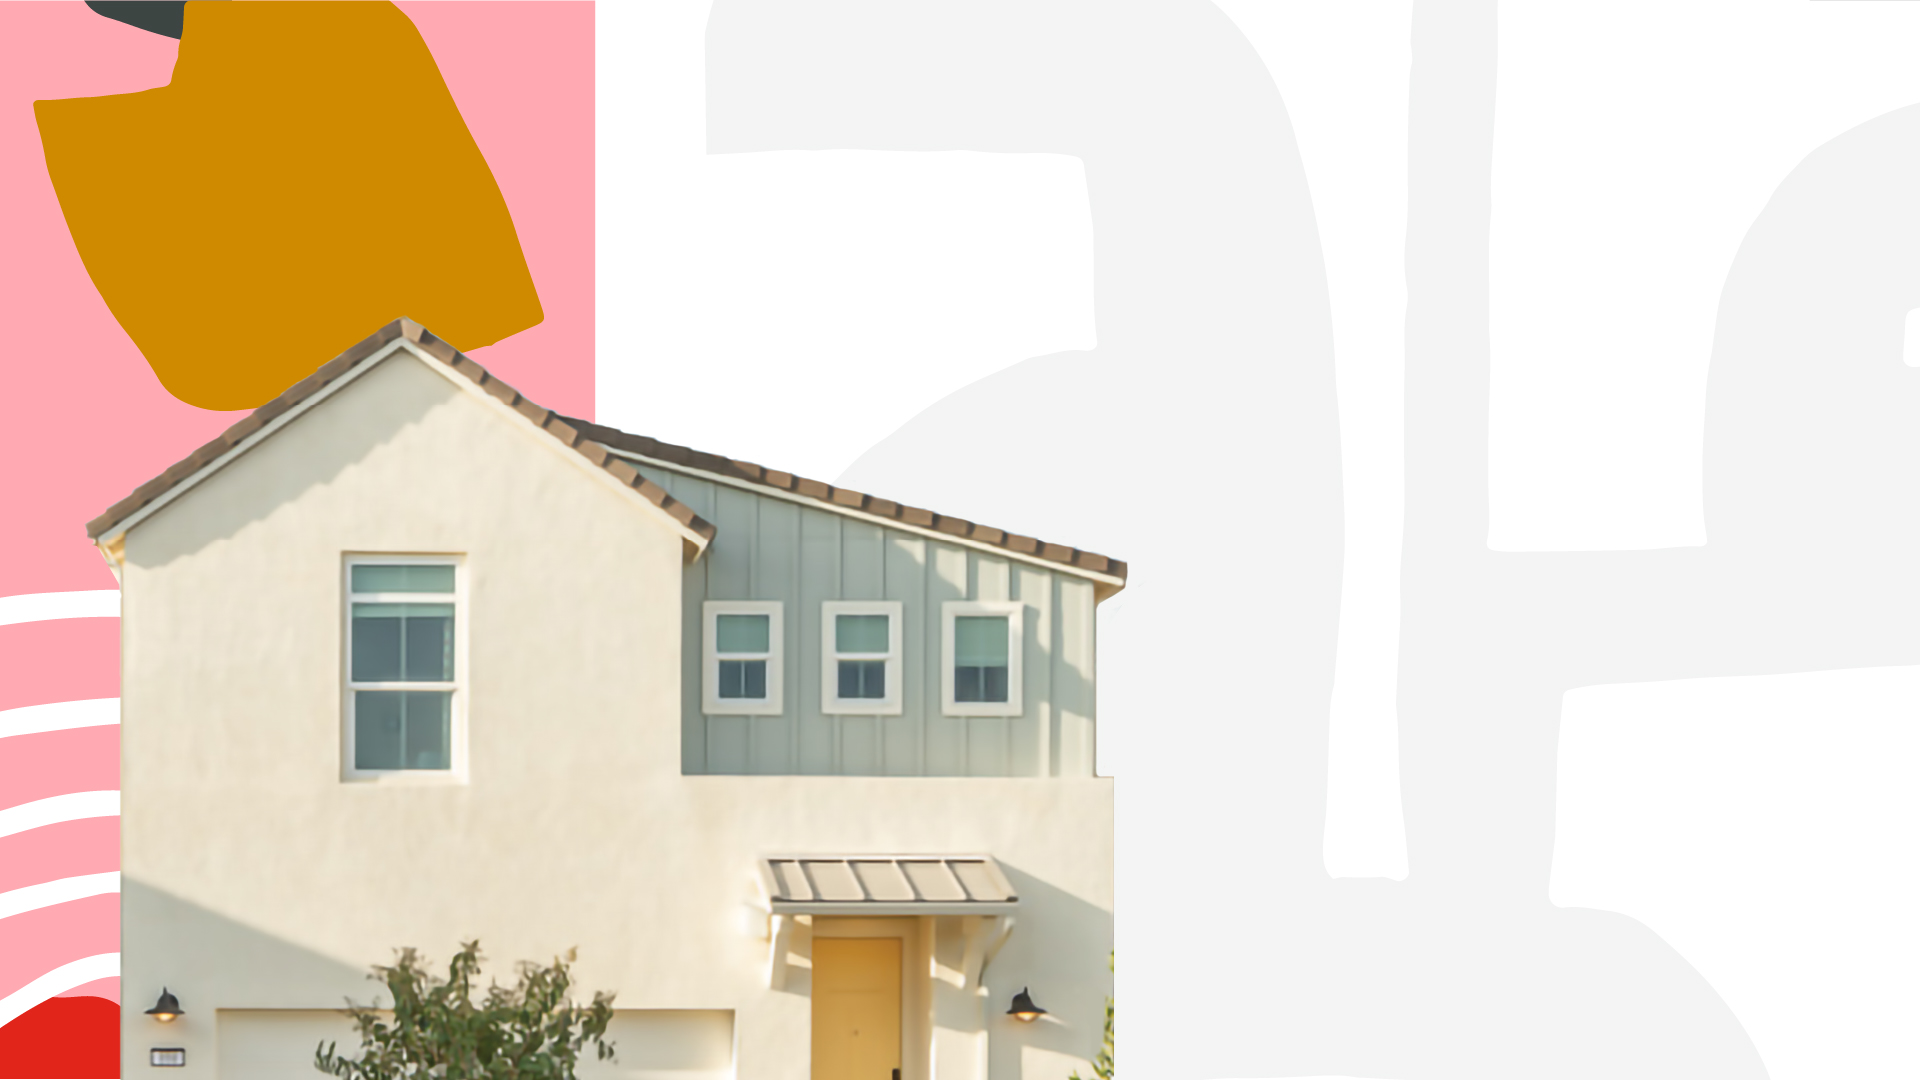 Home exterior collage